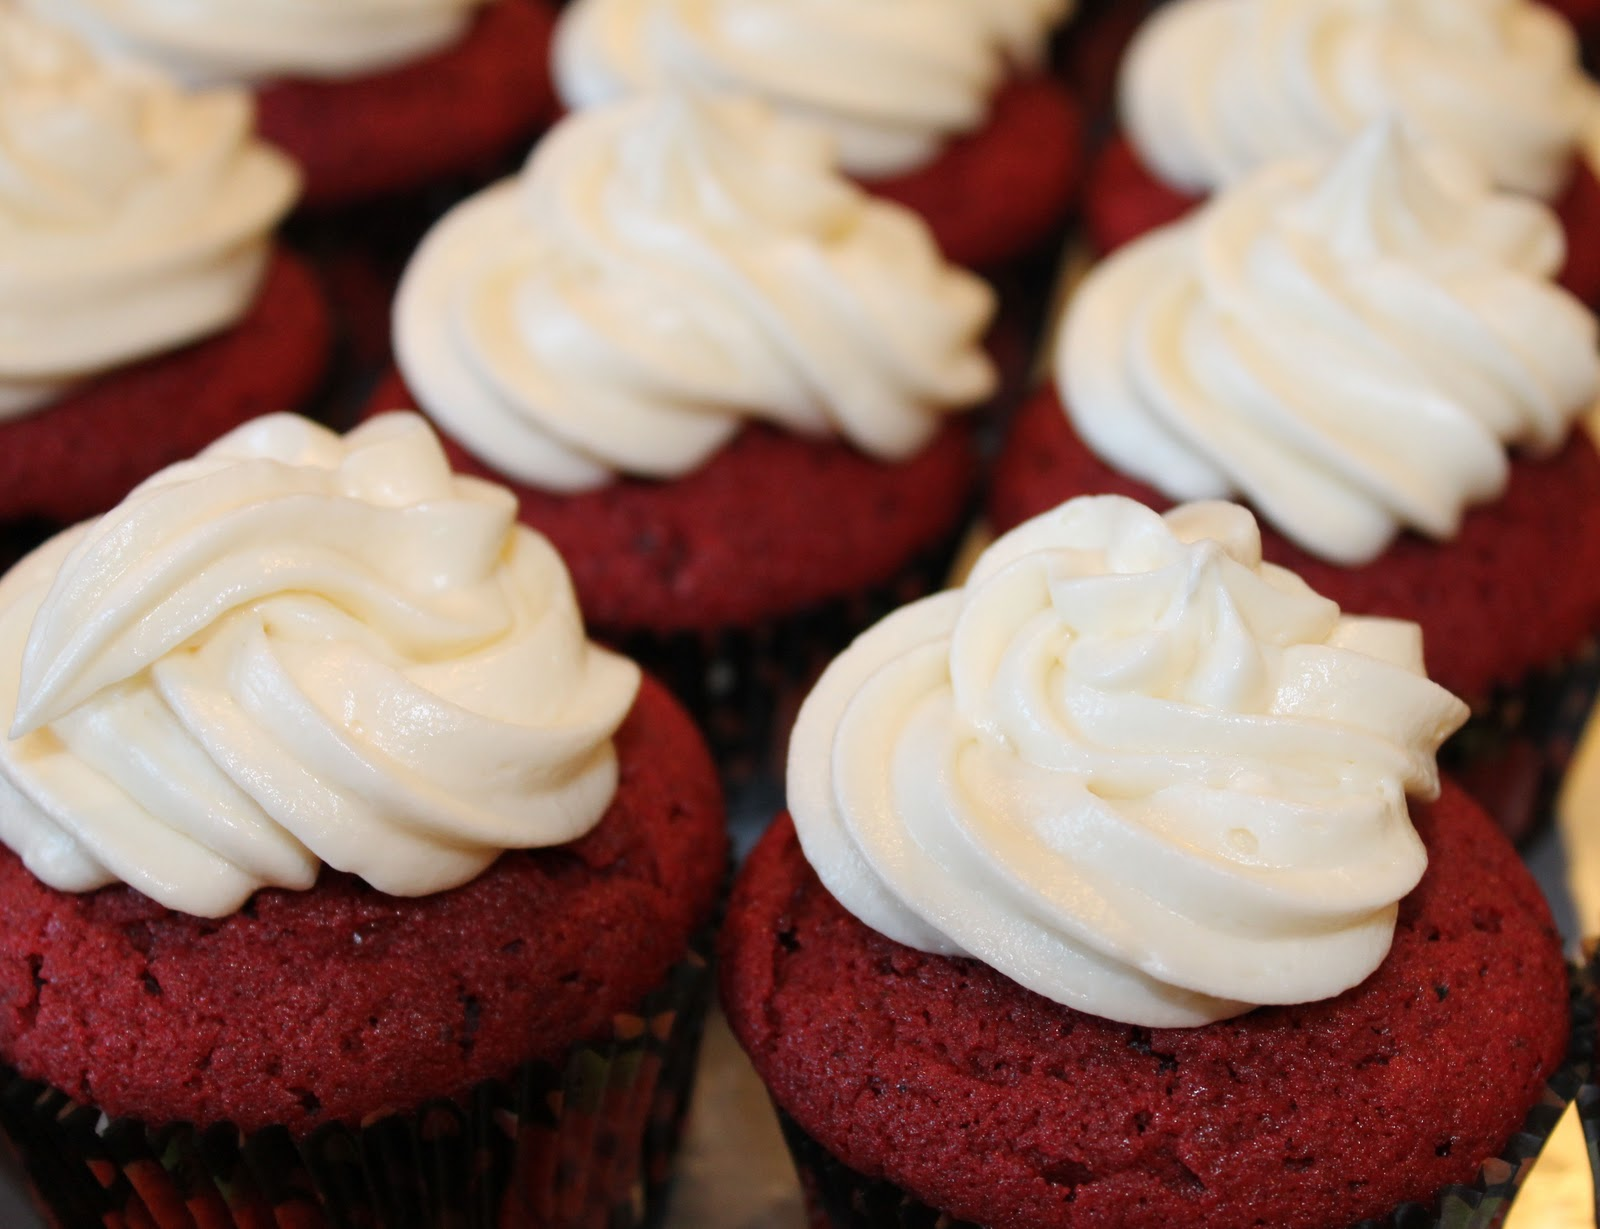 My Favorite Red Velvet Cupcake - Just One Donna!